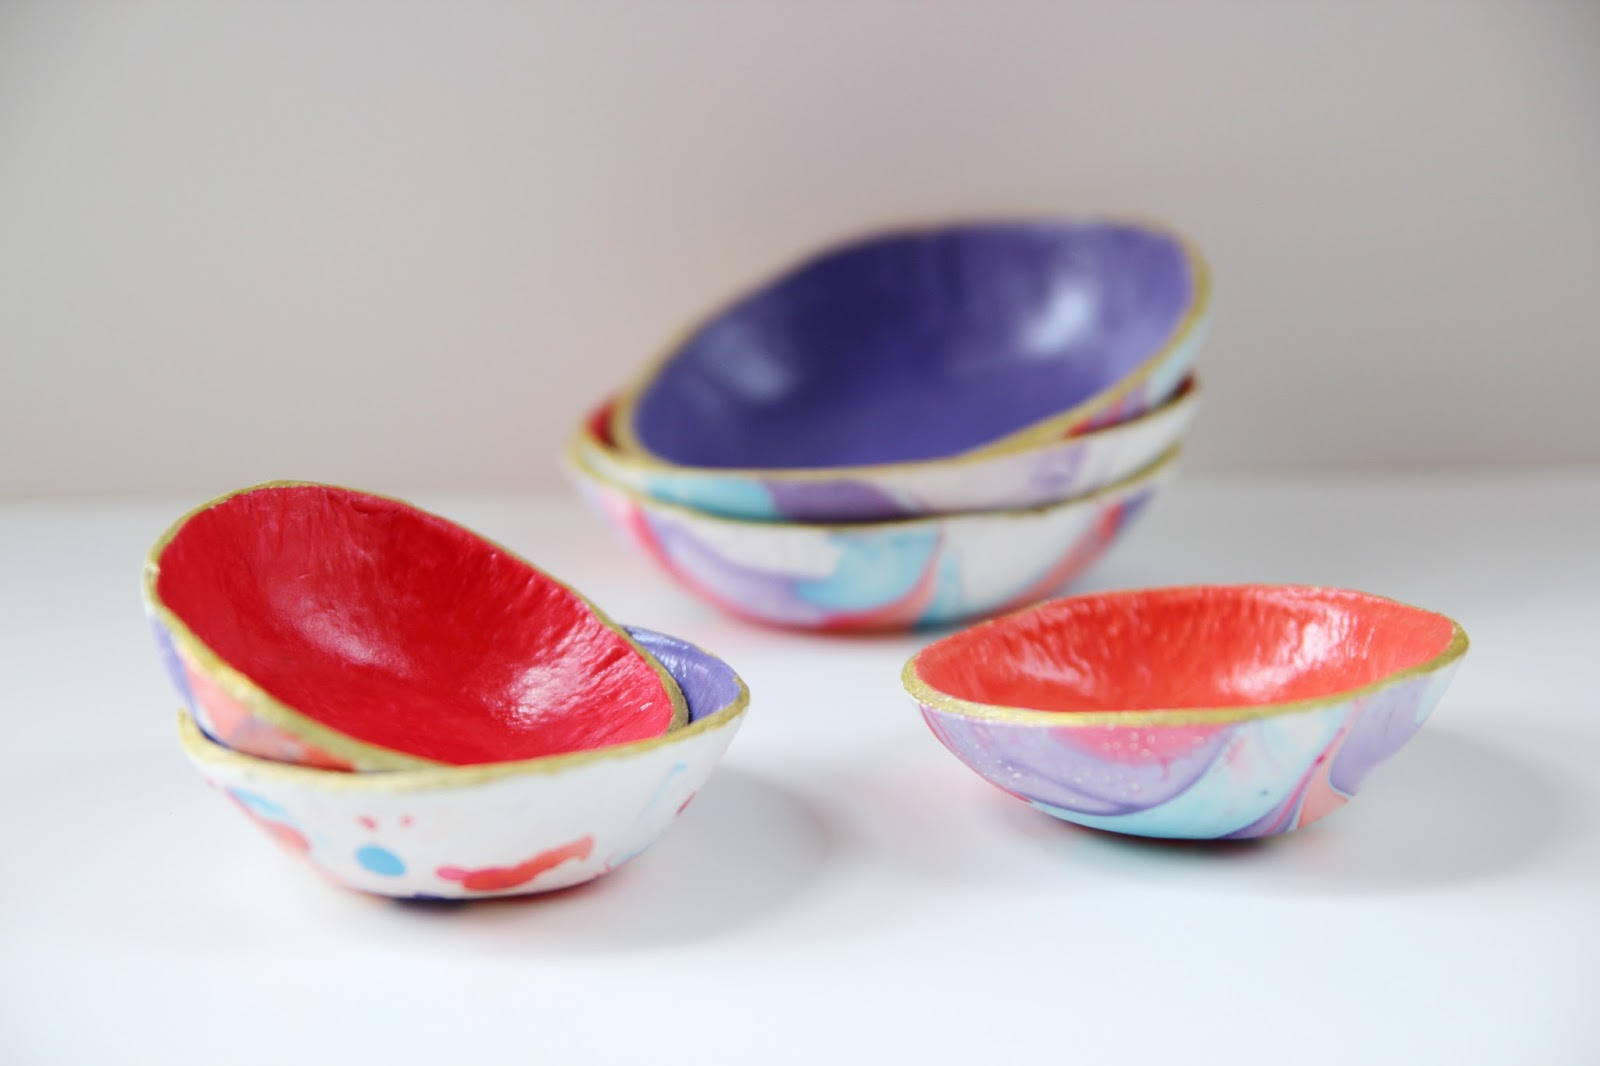 Use nail varnish and air dry clay to make these marbled bowls.